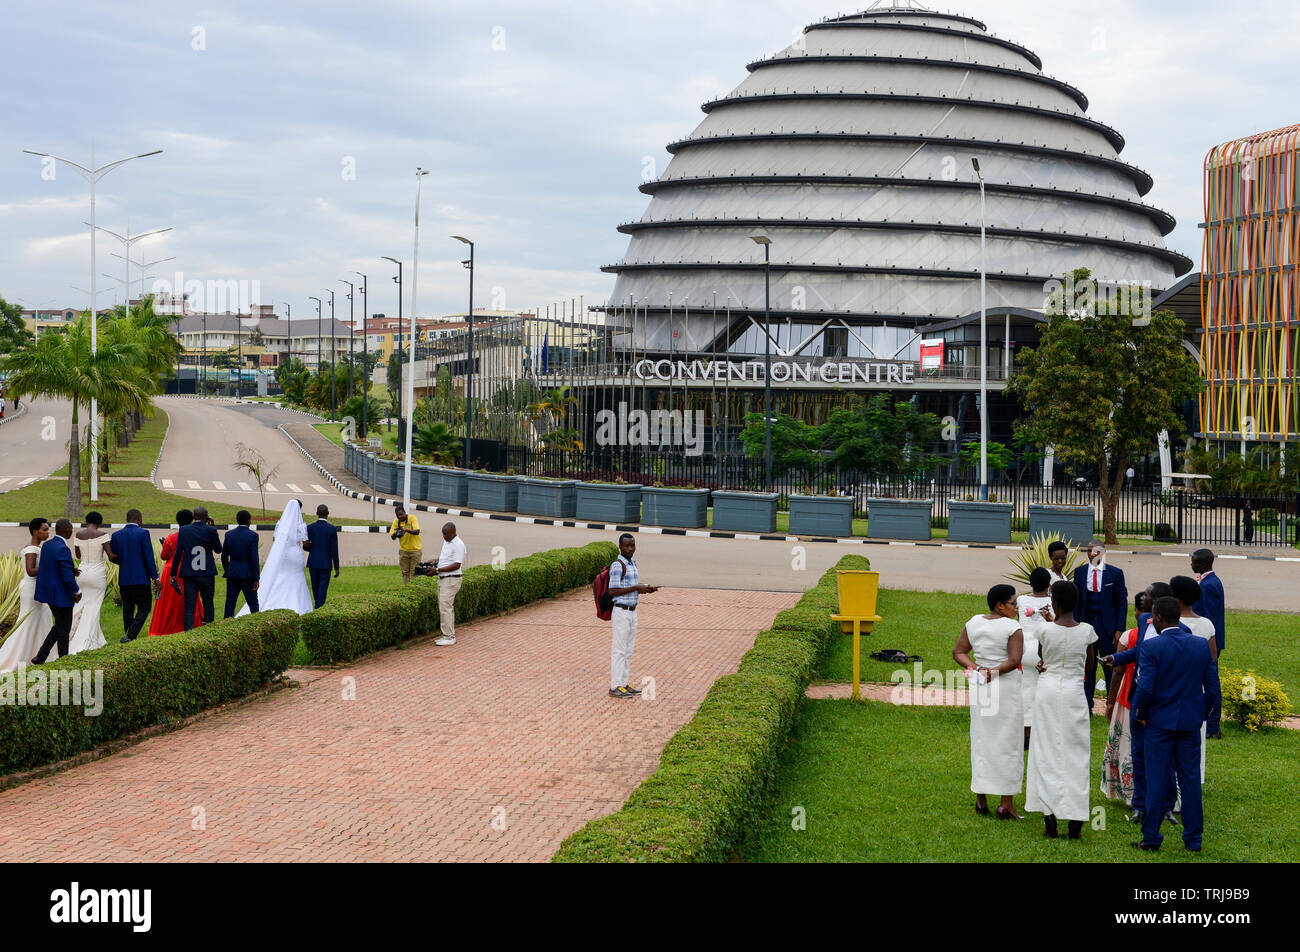 RWANDA, Kigali, Convention Center, spot for film and photoshooting for weeddings  / RUANDA, Kigali, Convention Center, Kongresszentrum , Hochzeitspaare beim Fotoshooting - Stock Image